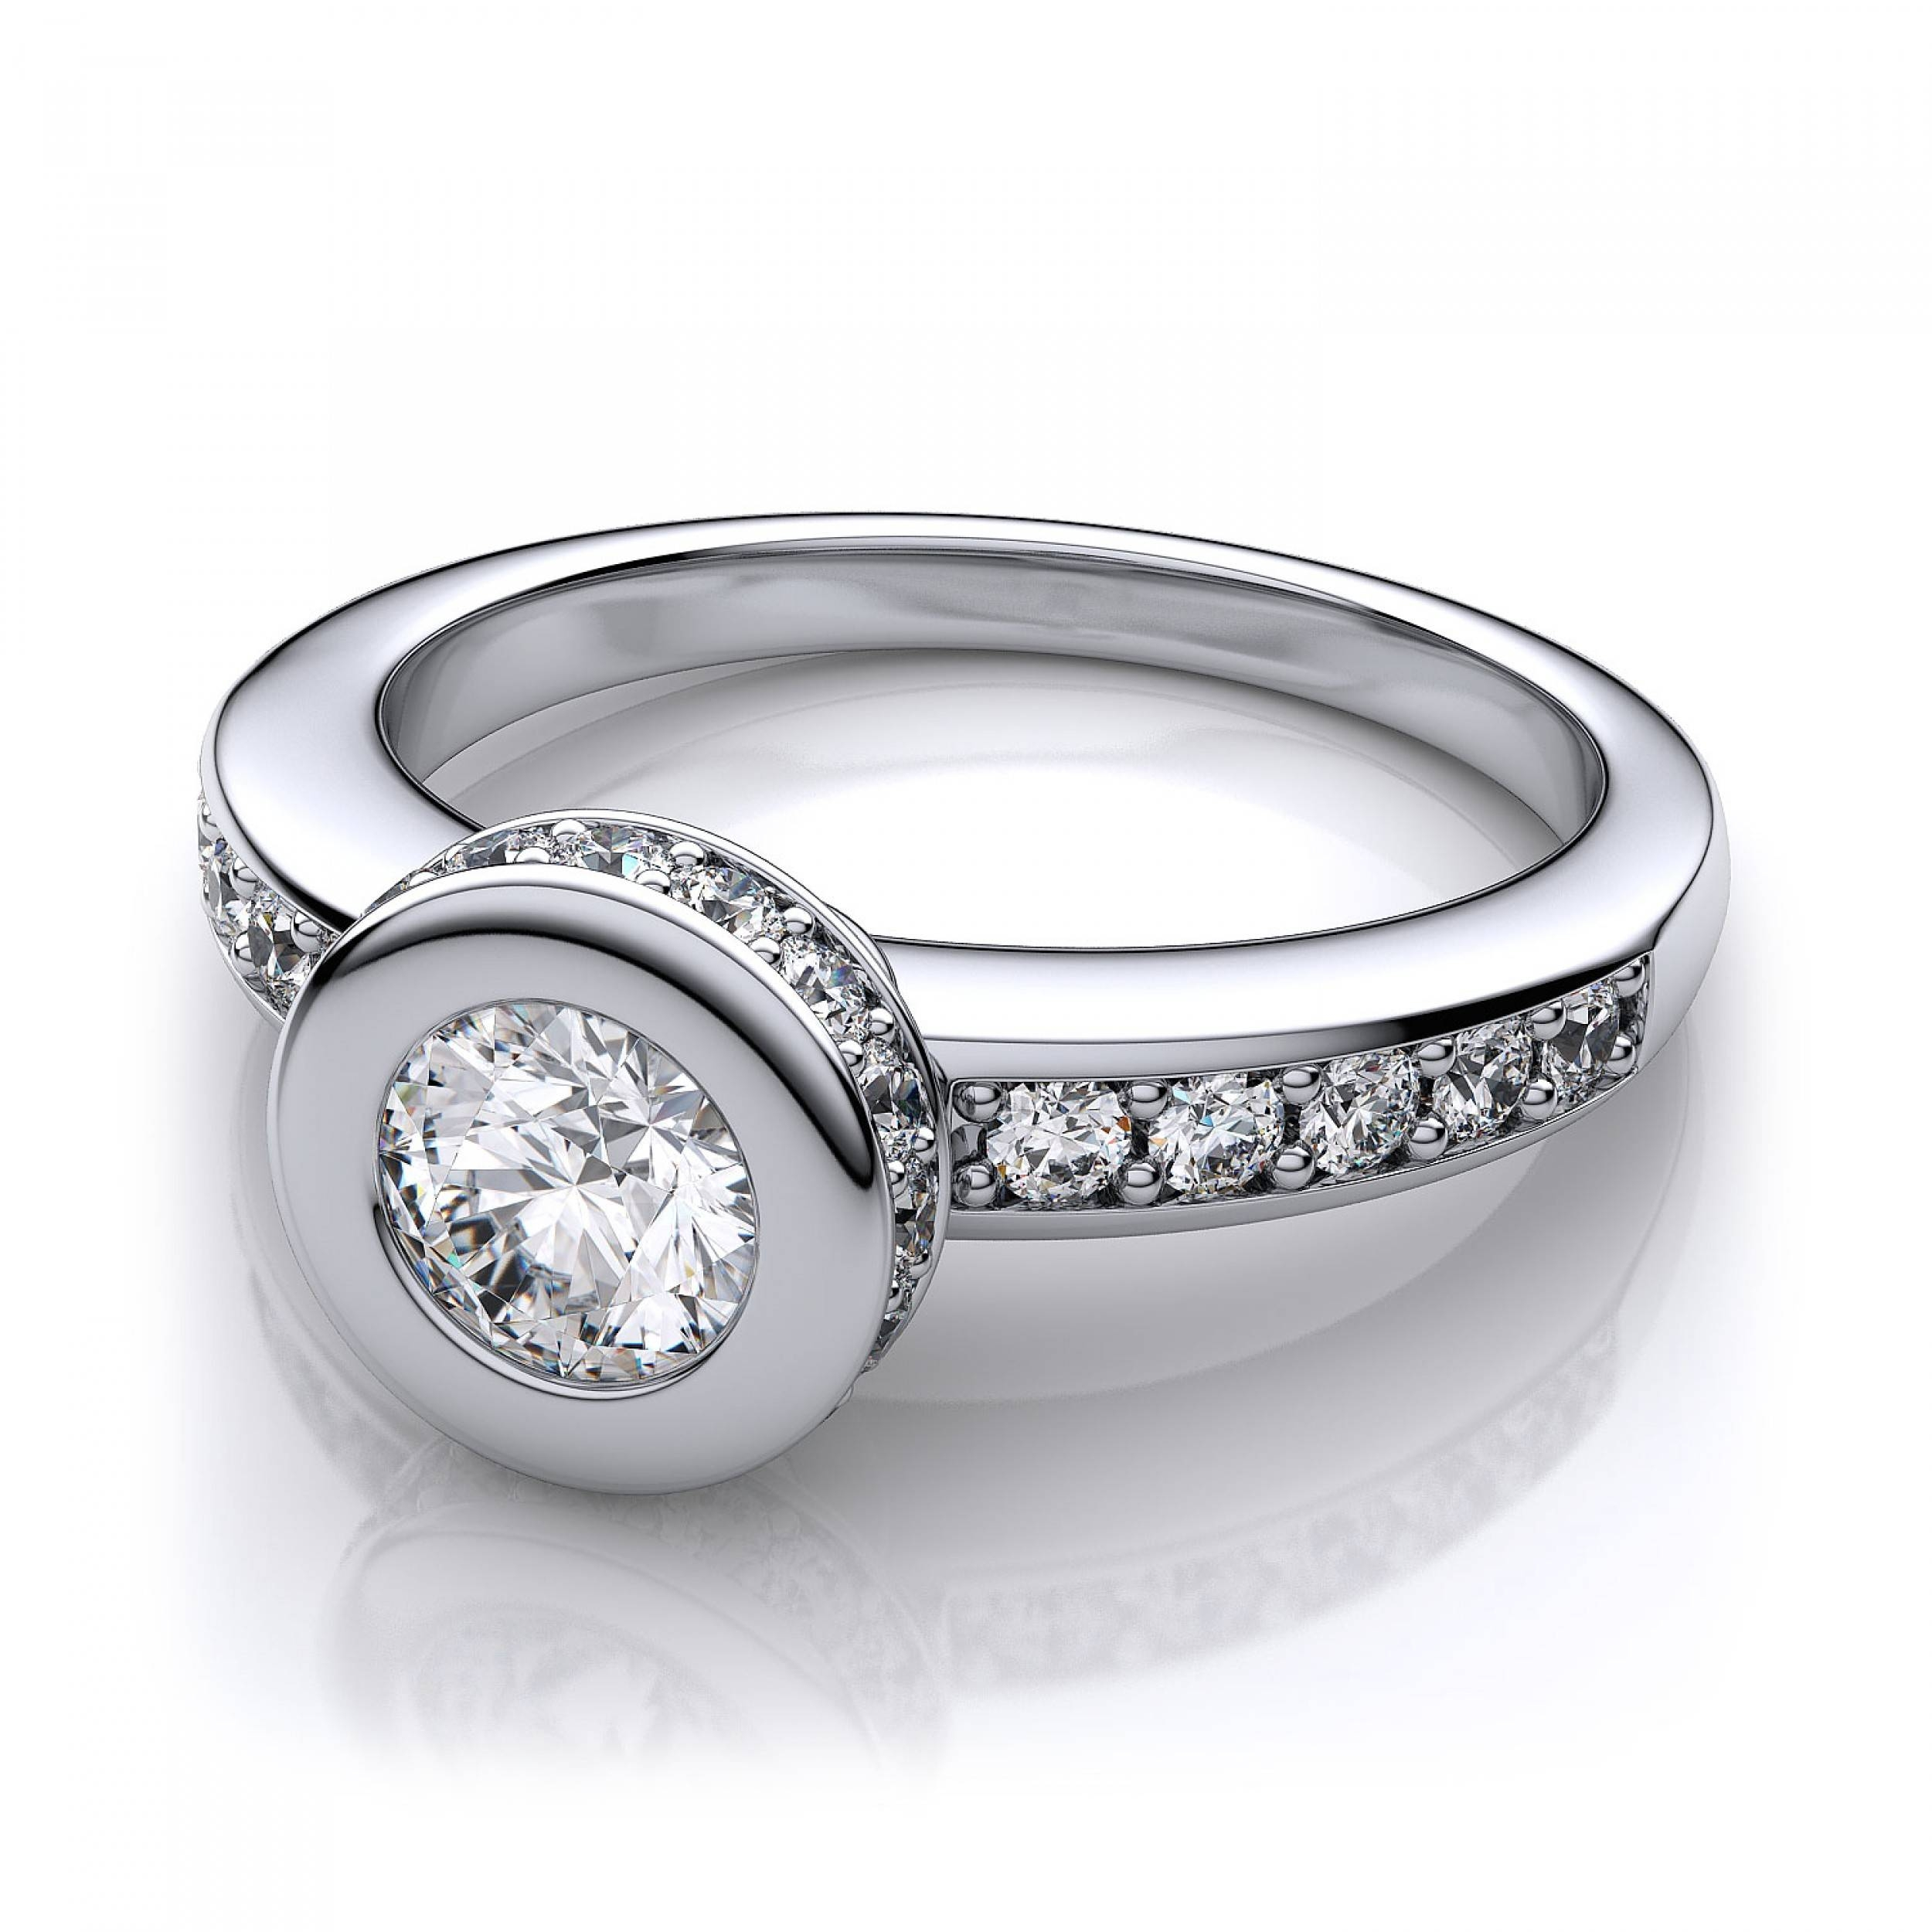 35Ctw Halo Round Diamond Sidestones Bezel Set Sidestones Throughout Diamond Wedding Rings Settings (Gallery 3 of 15)